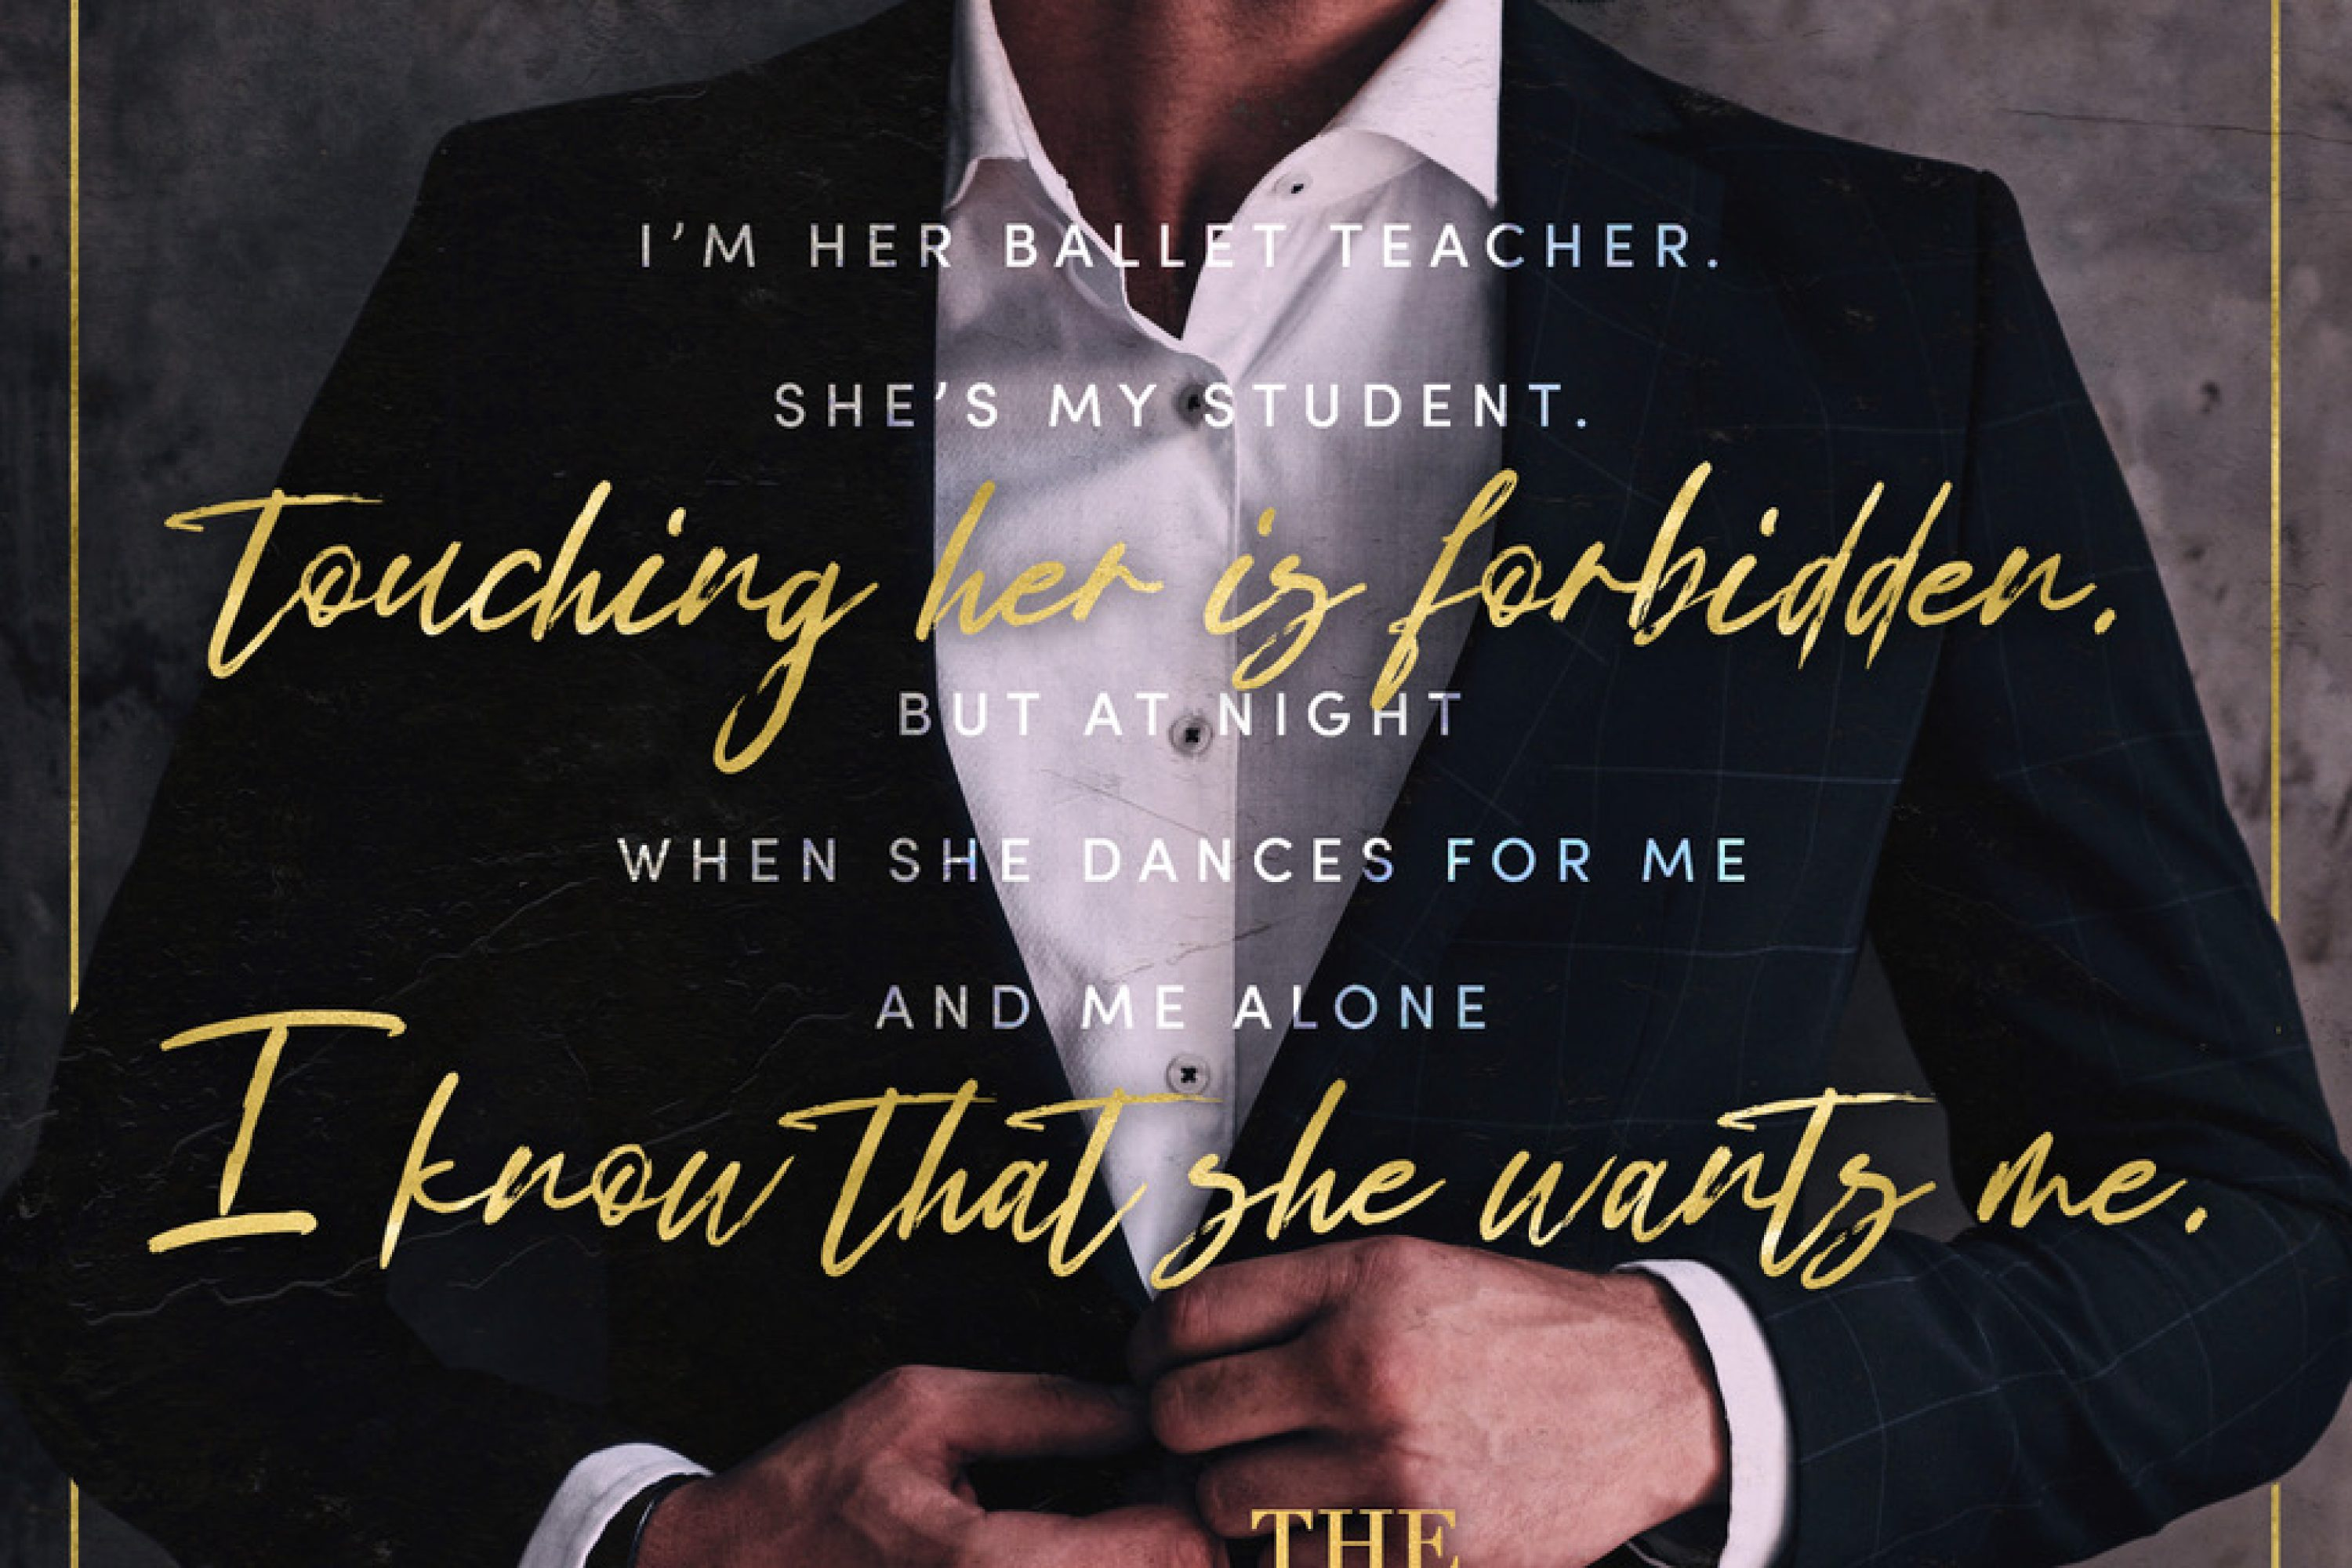 New Teaser: The Patron by Vivian Wood